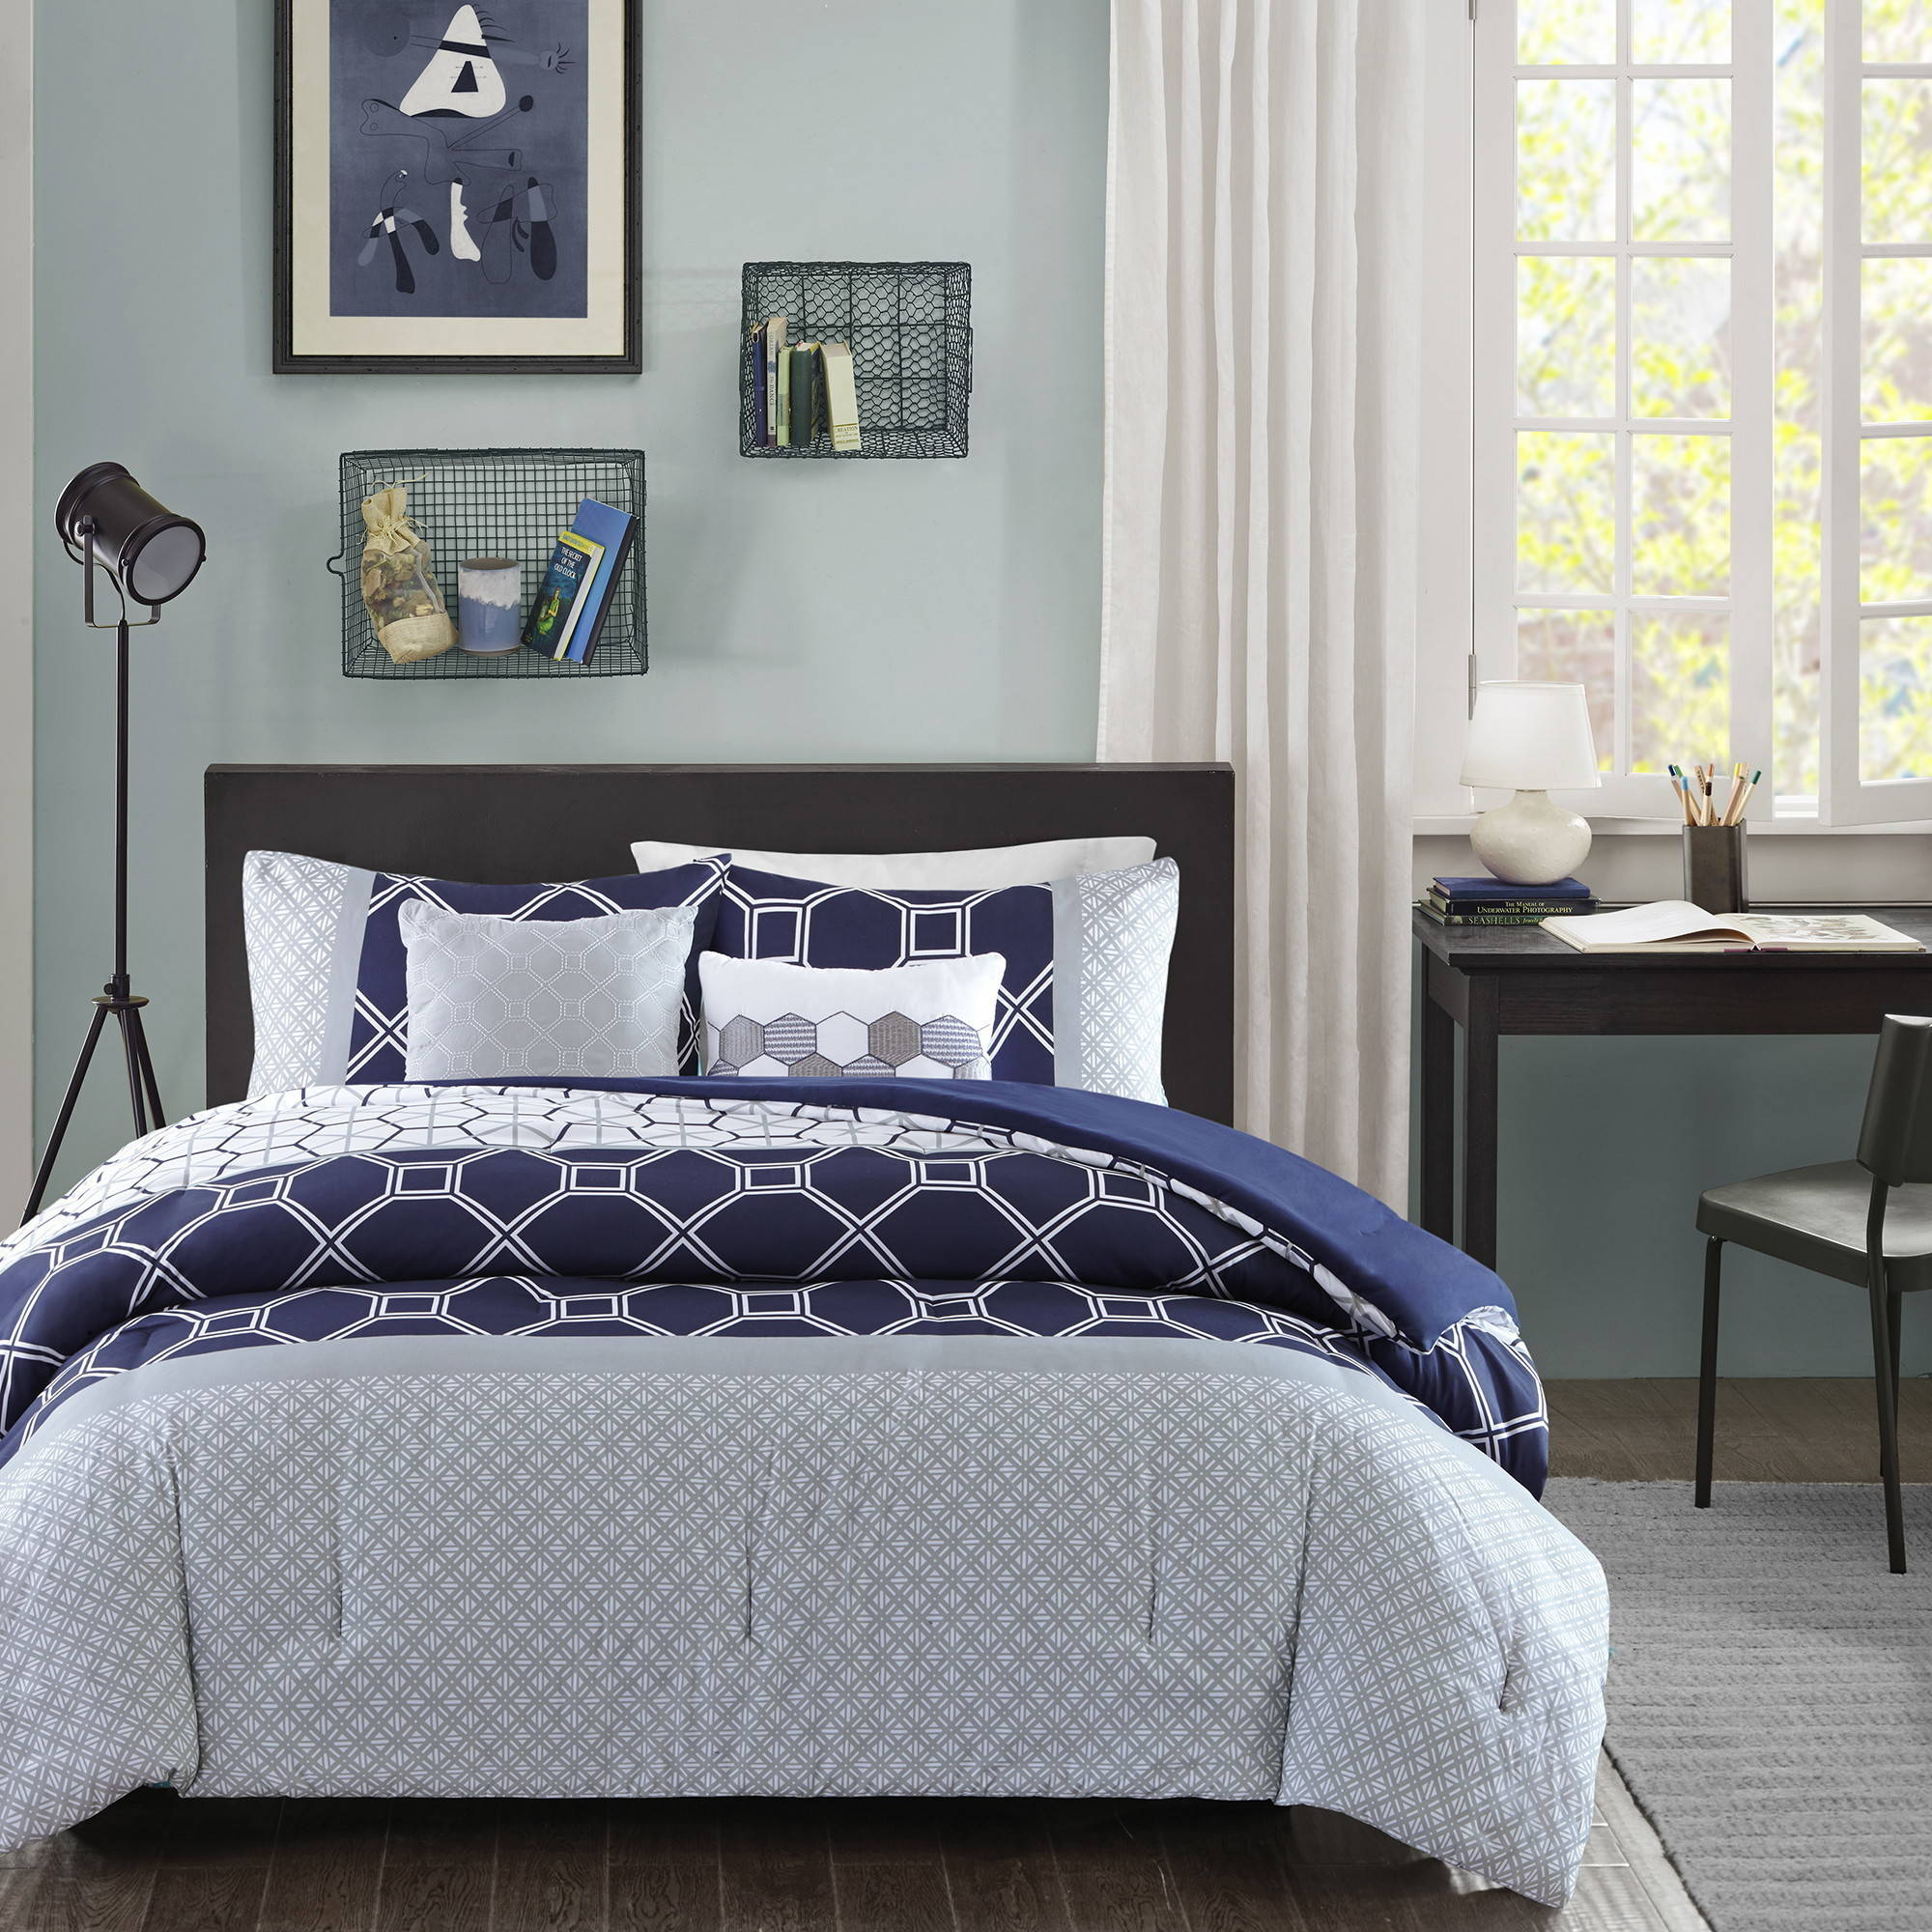 blue best uncategorized set of light full navy sets queen style files and comforter popular pic sky